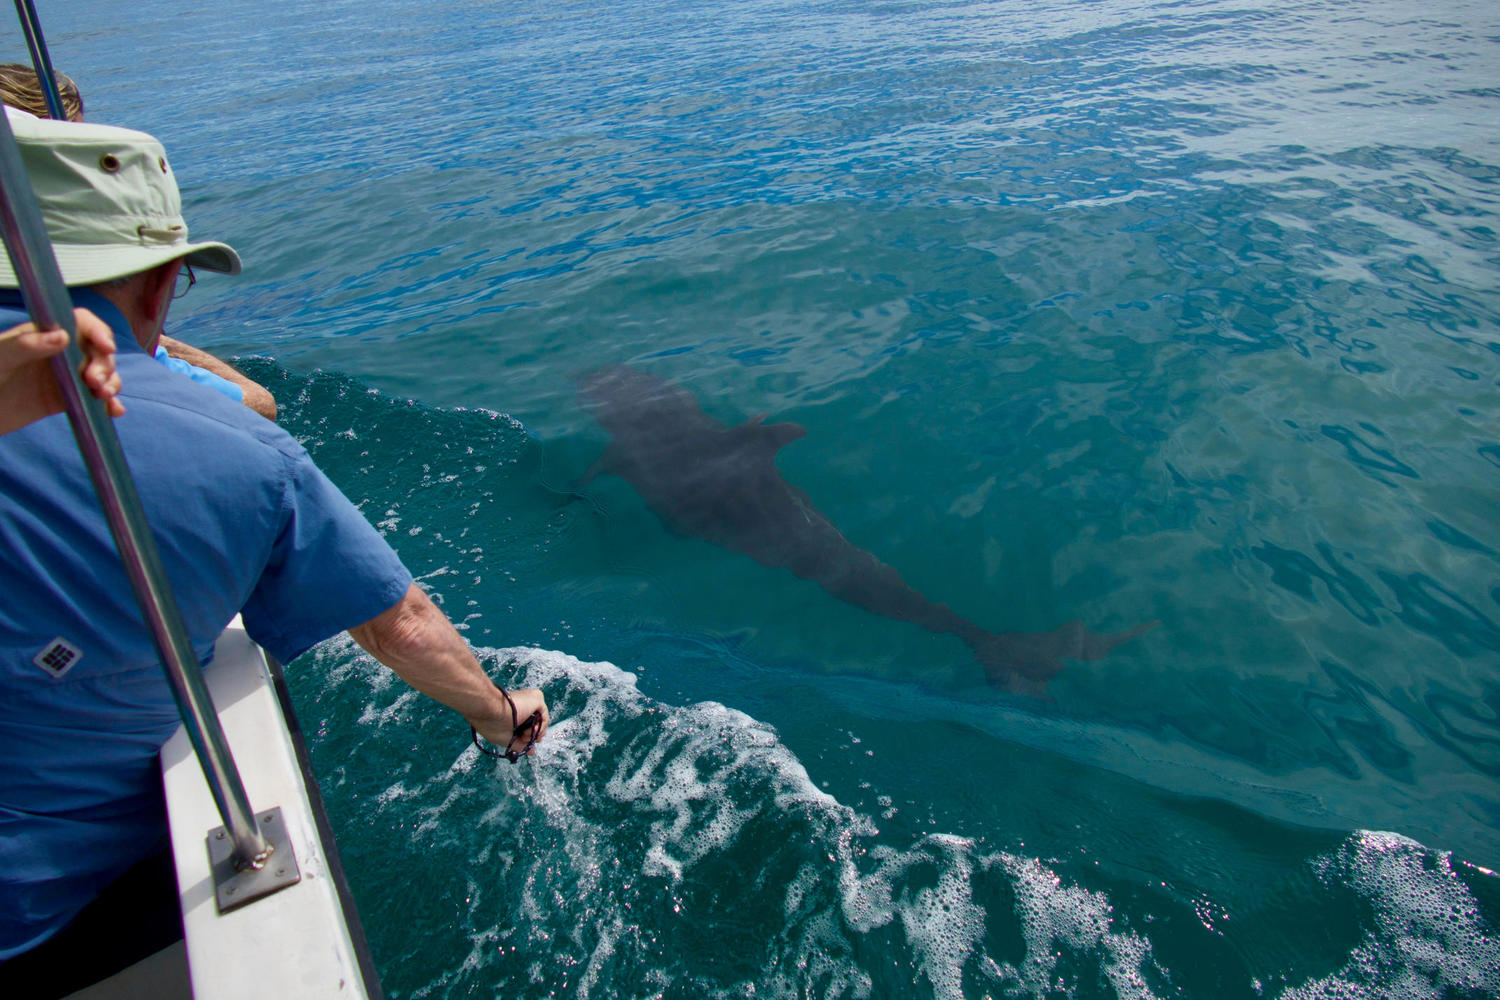 It's not uncommon for dolphins to swim up beside boats on the Golfo Dulce, Osa Peninsula